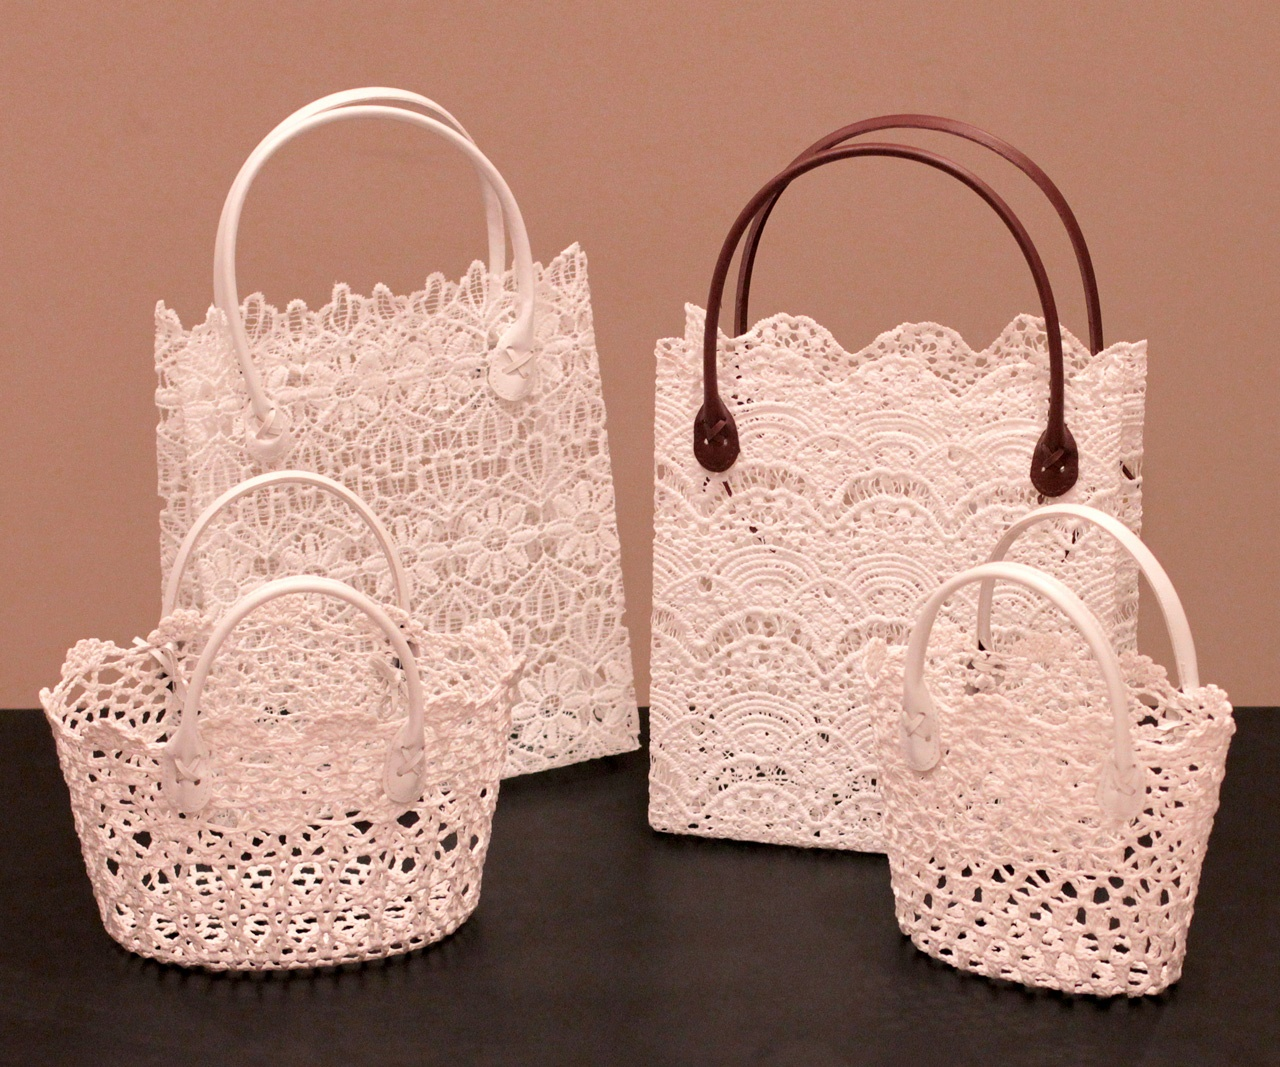 Embroidery Lace Tote Bags